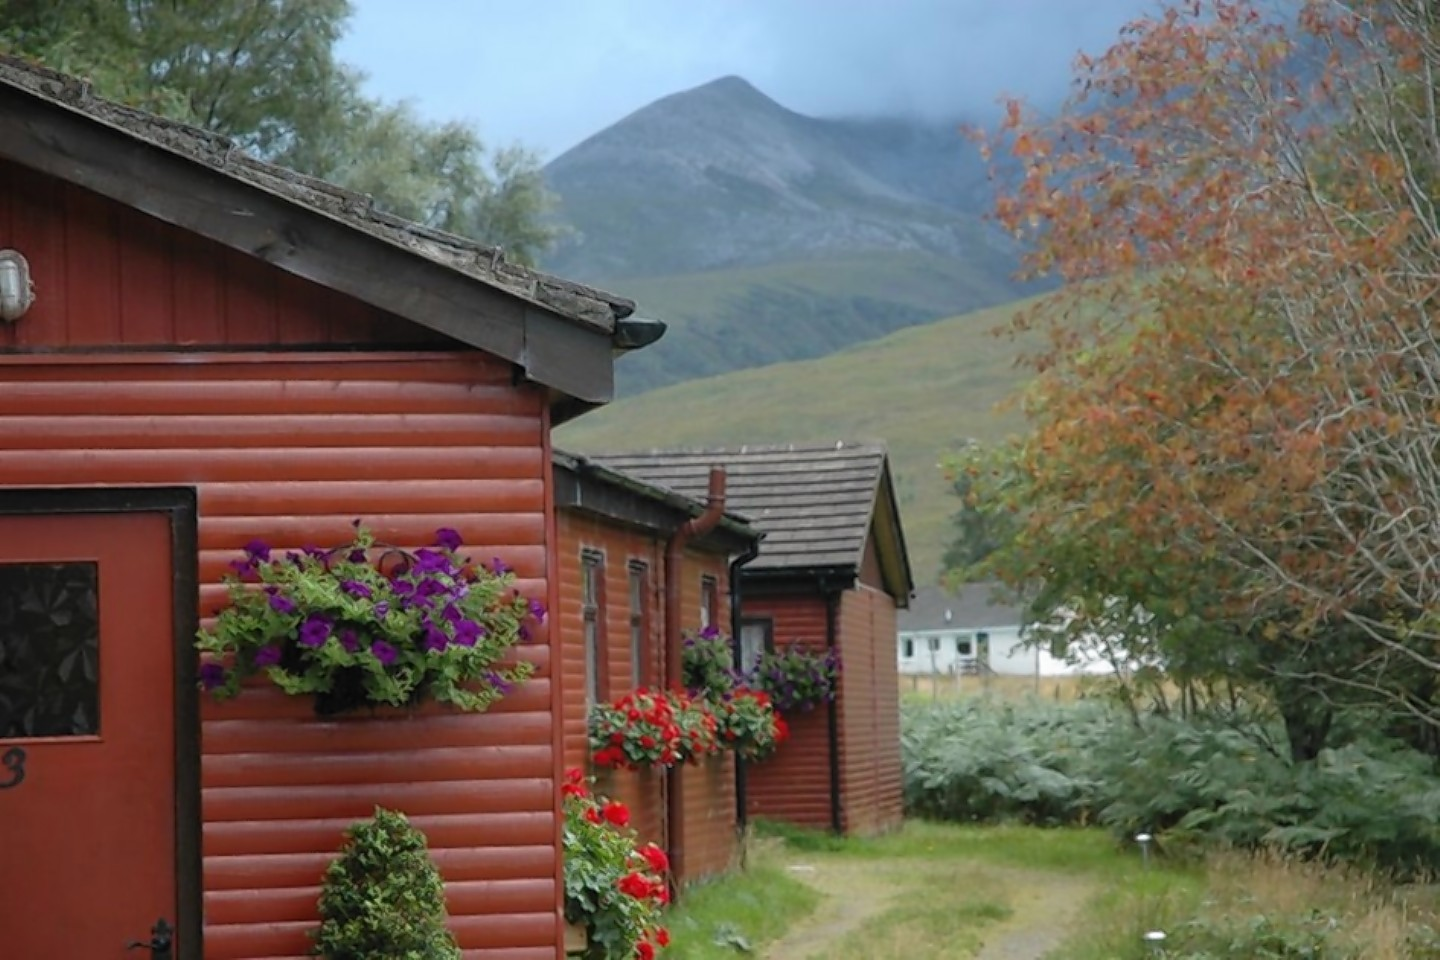 Lodges at Kinlochewe